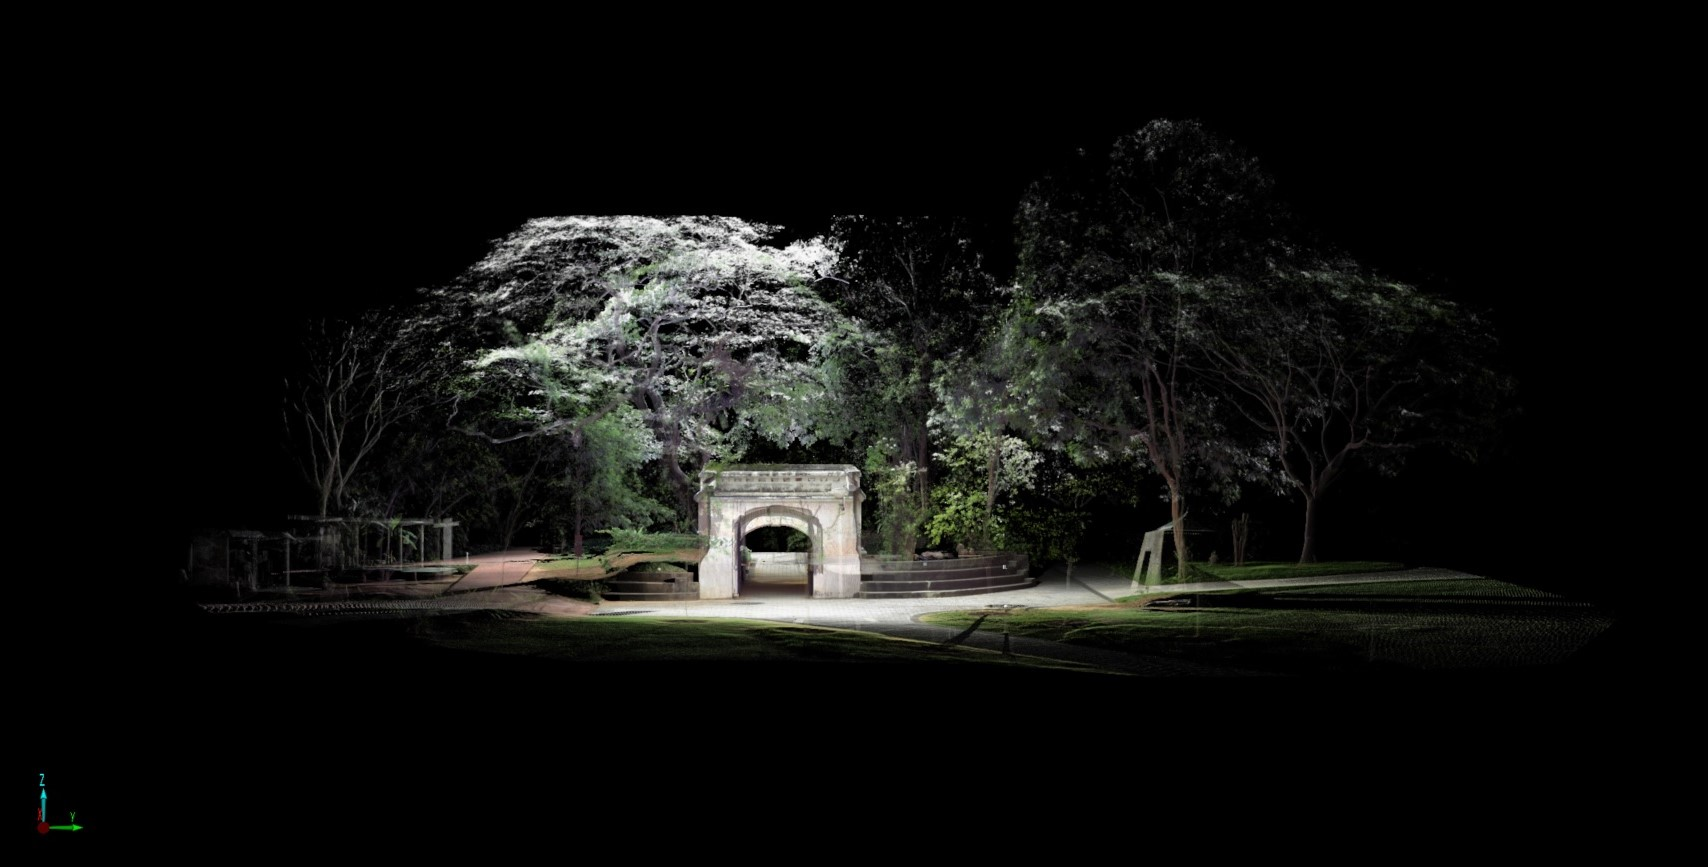 Fort Canning Gate - Front View